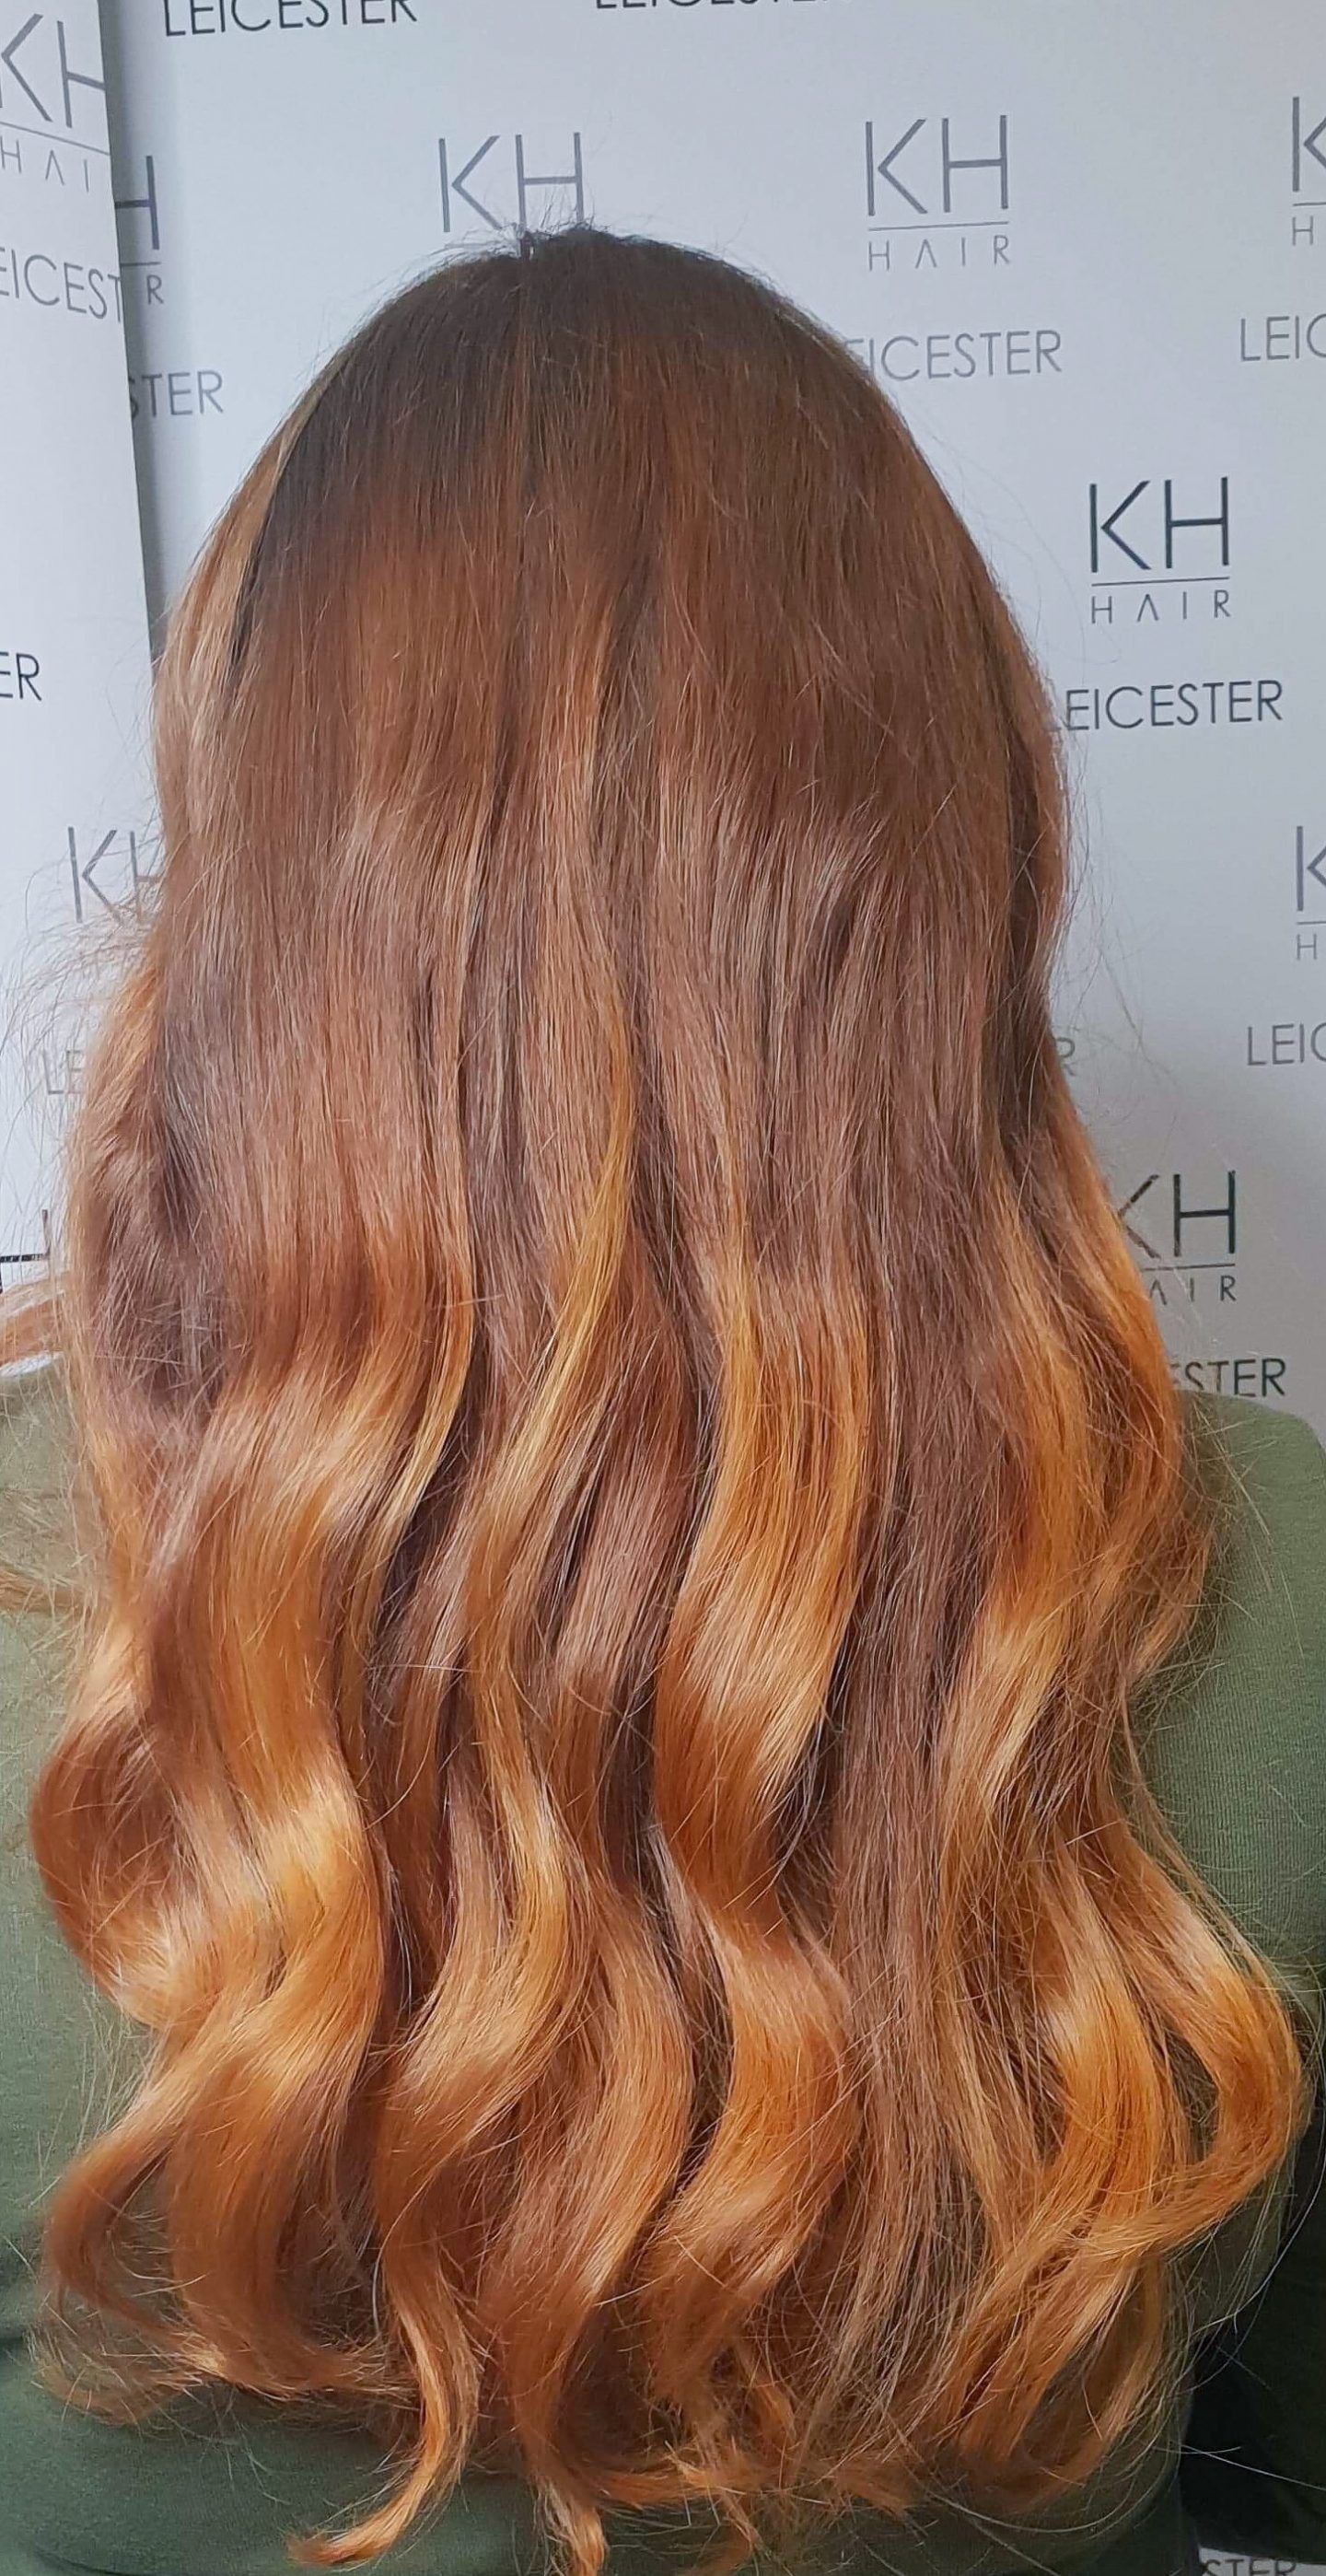 The Best Salon in Leicester? KH Hair*